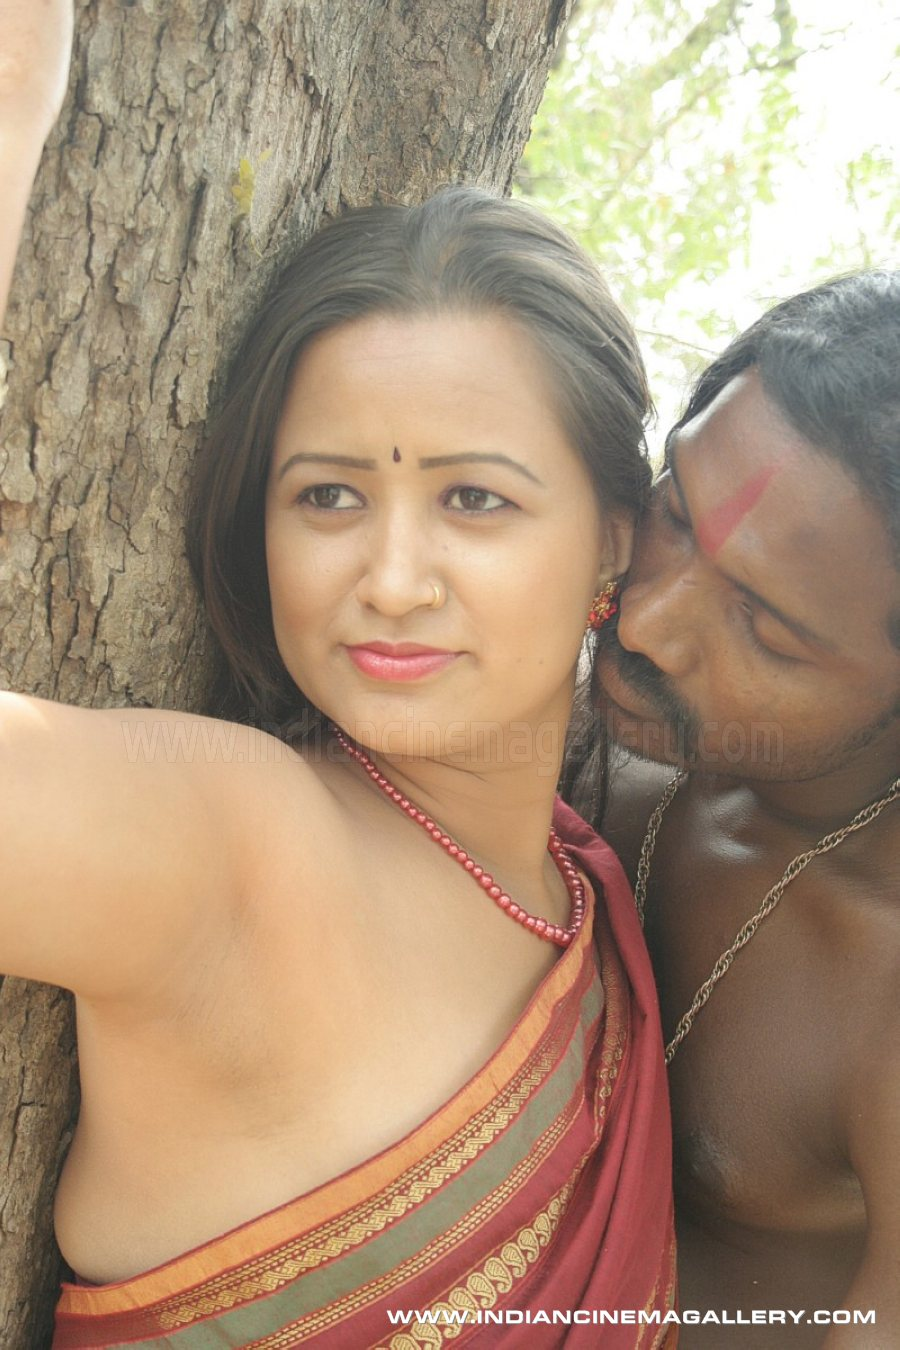 tamil mallu aunty romance in jungle hot shots from latest